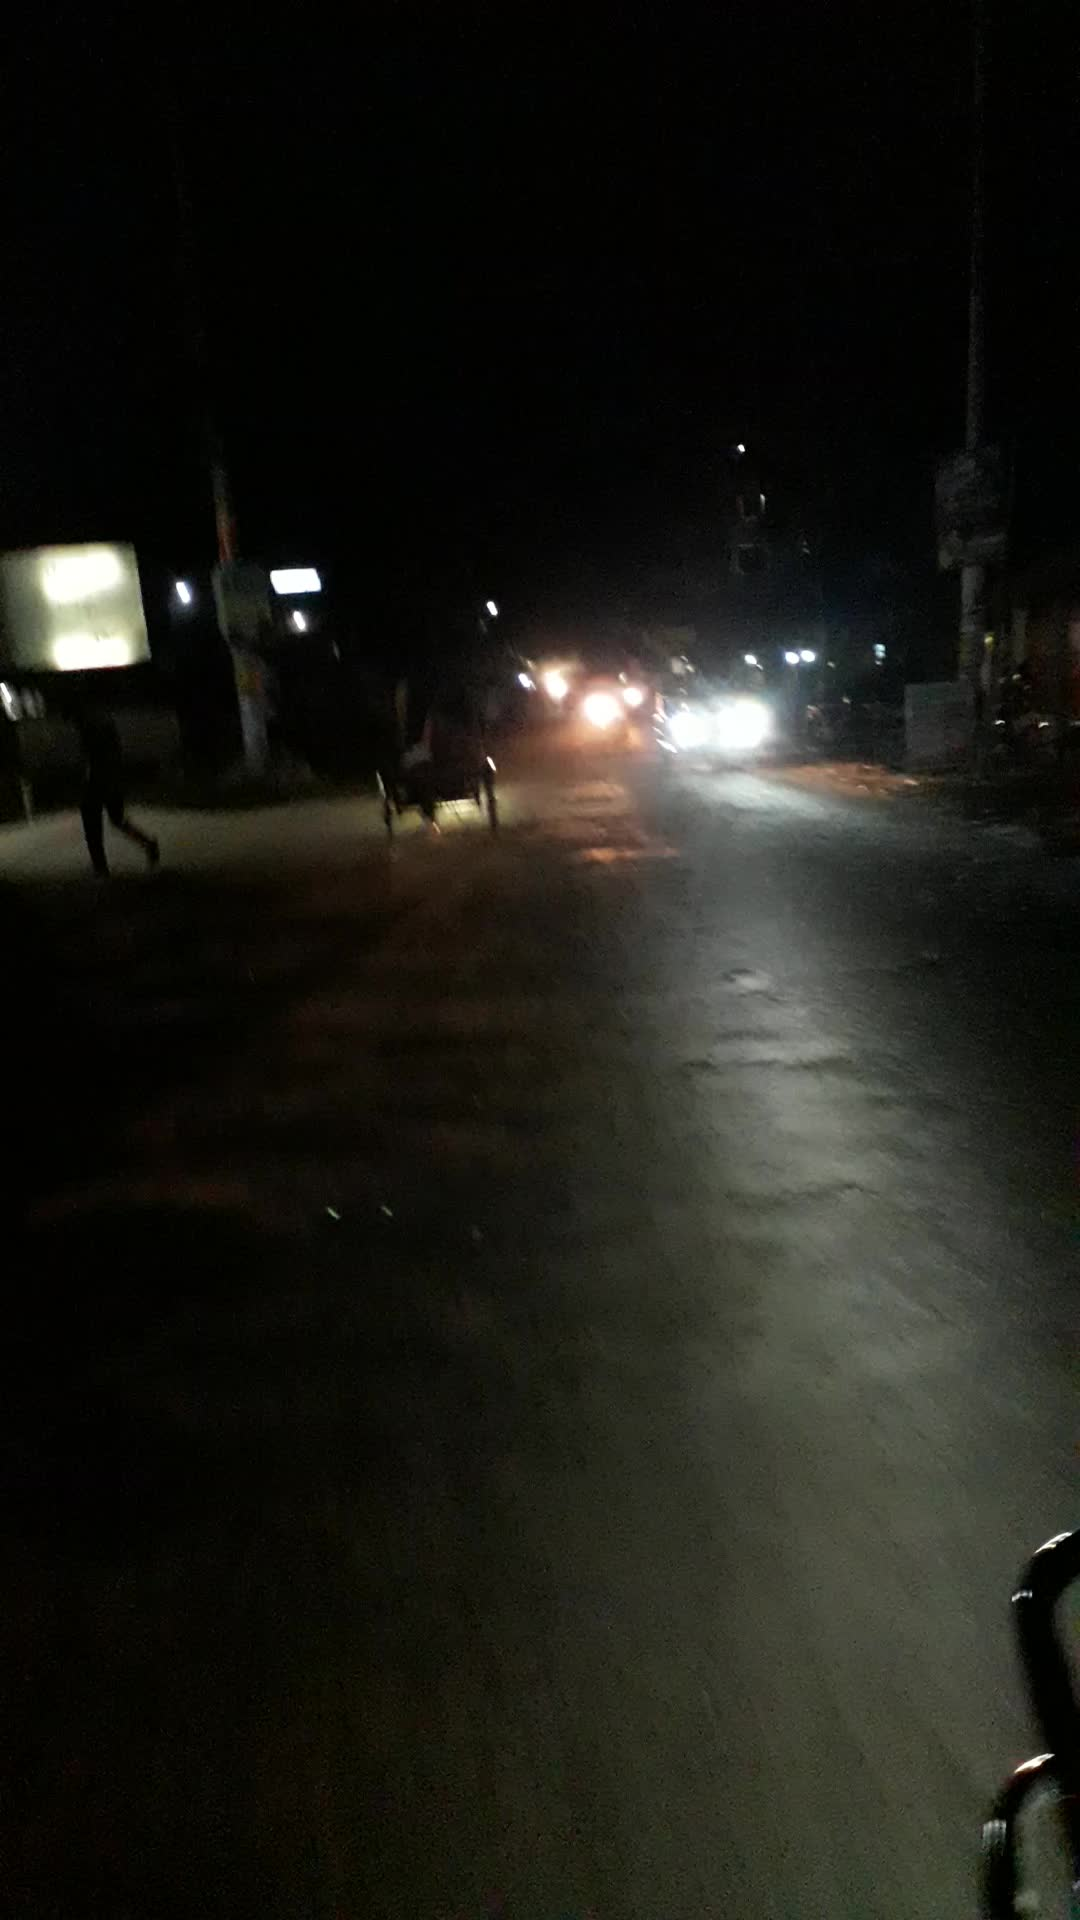 Night traffic conditions on the road